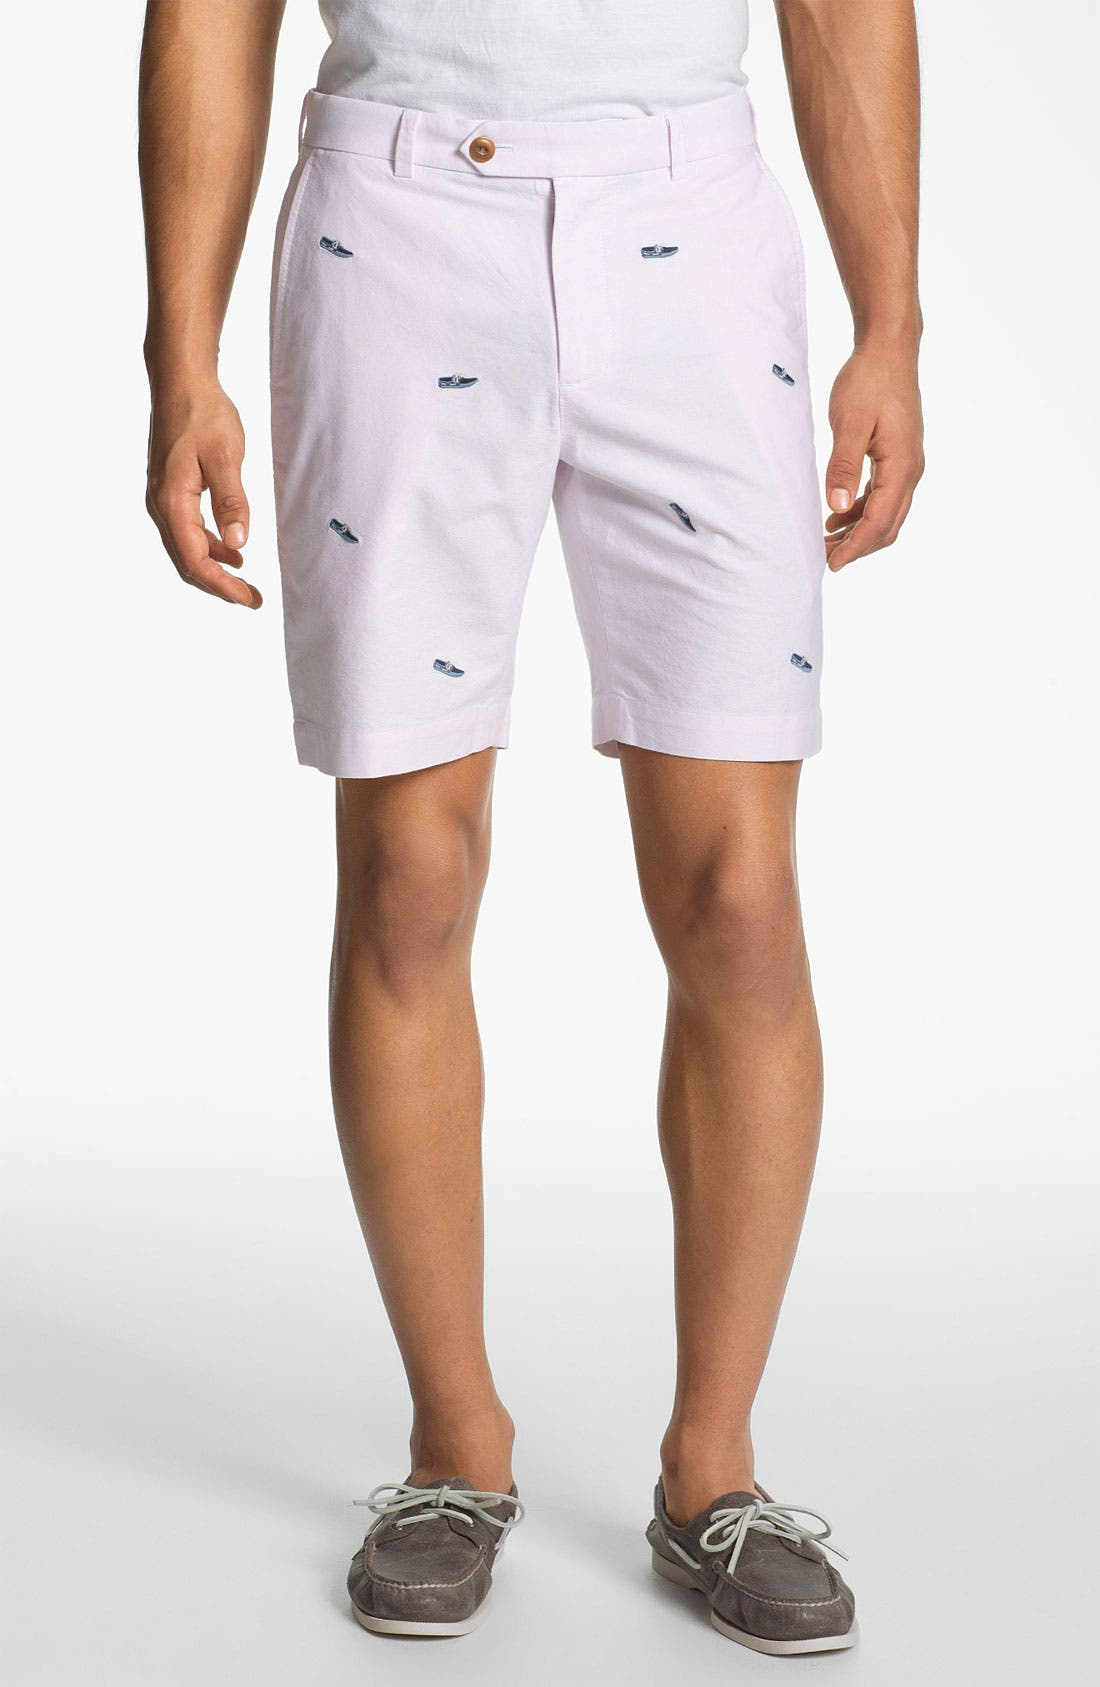 Alternate Image 1 Selected - Brooks Brothers 'Boat Shoe' Shorts